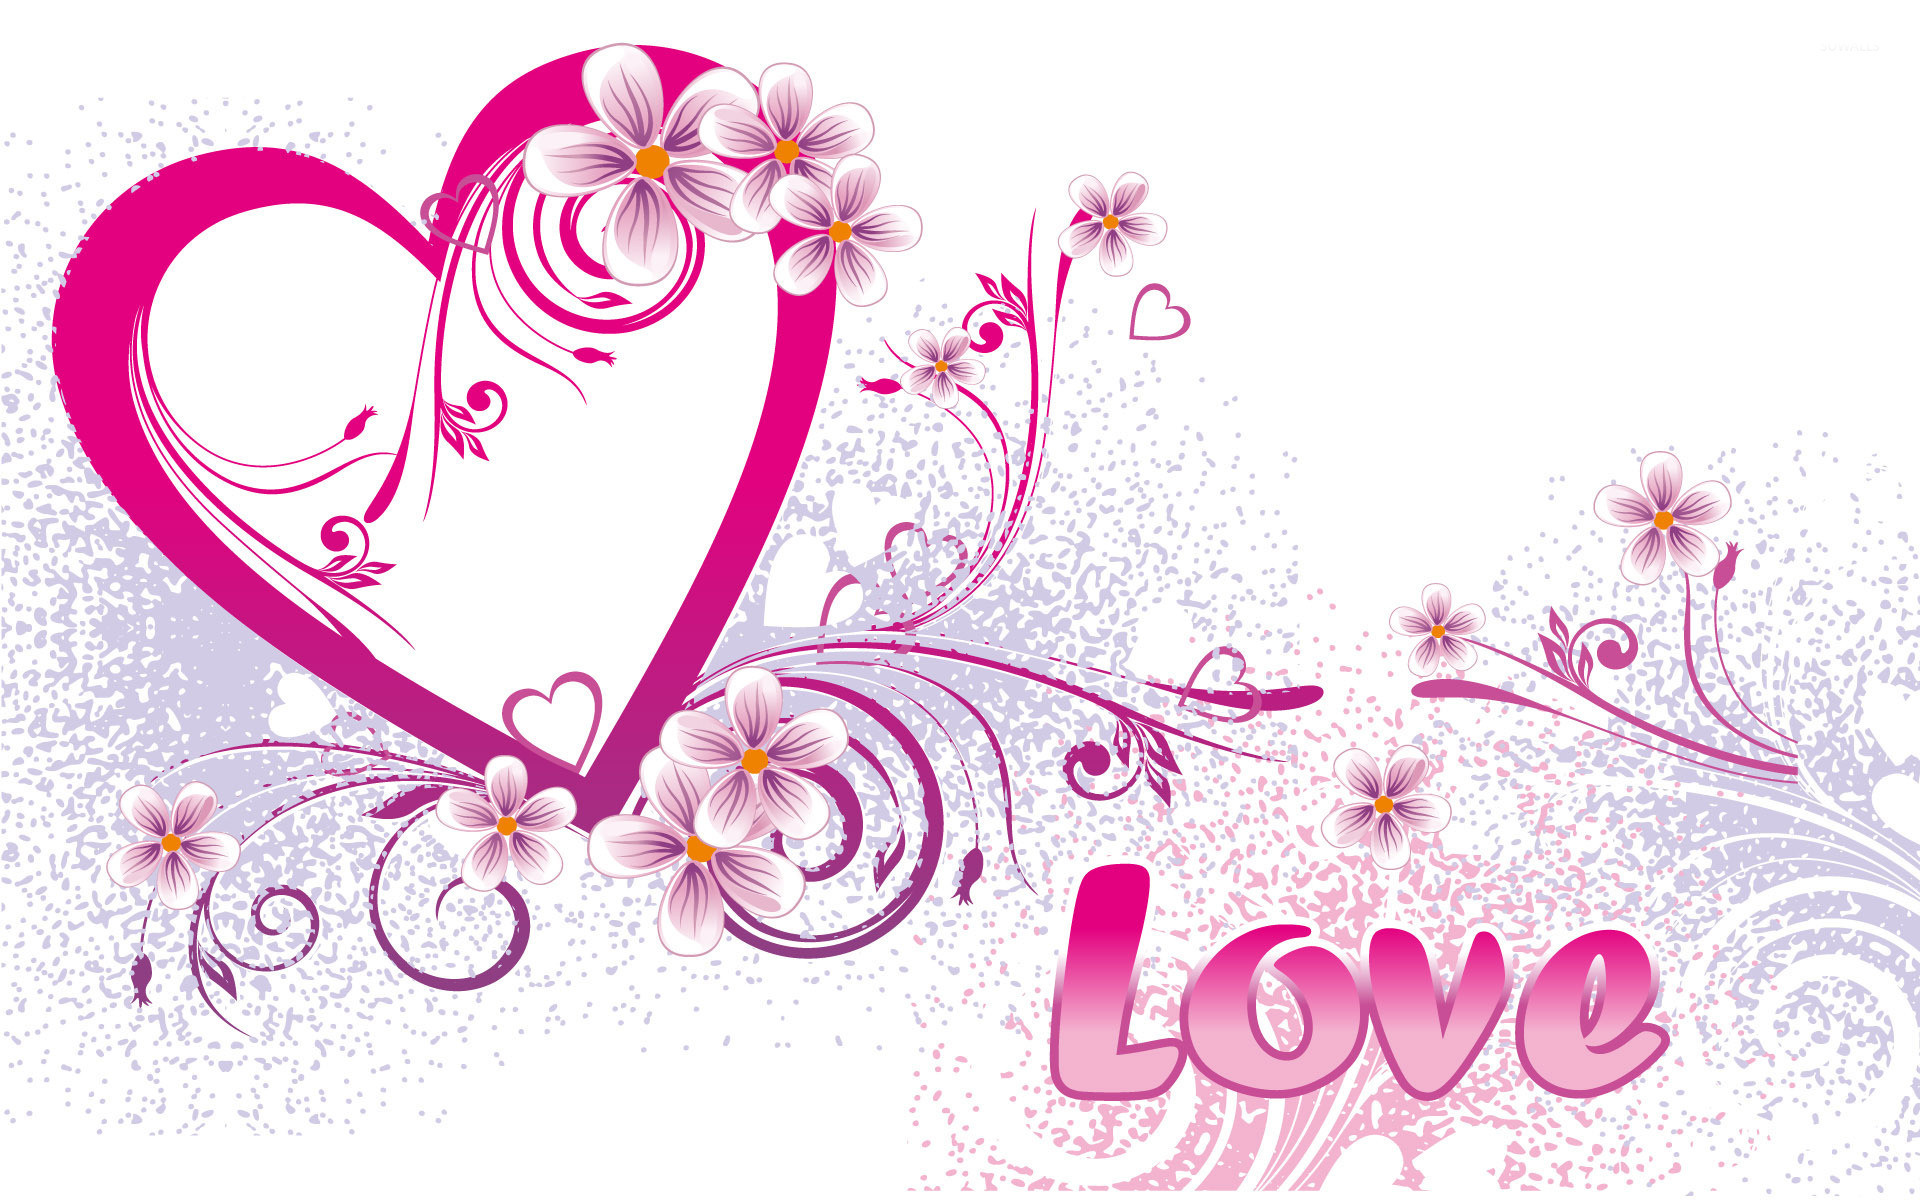 Res: 1920x1200, Love and pink heart wallpaper